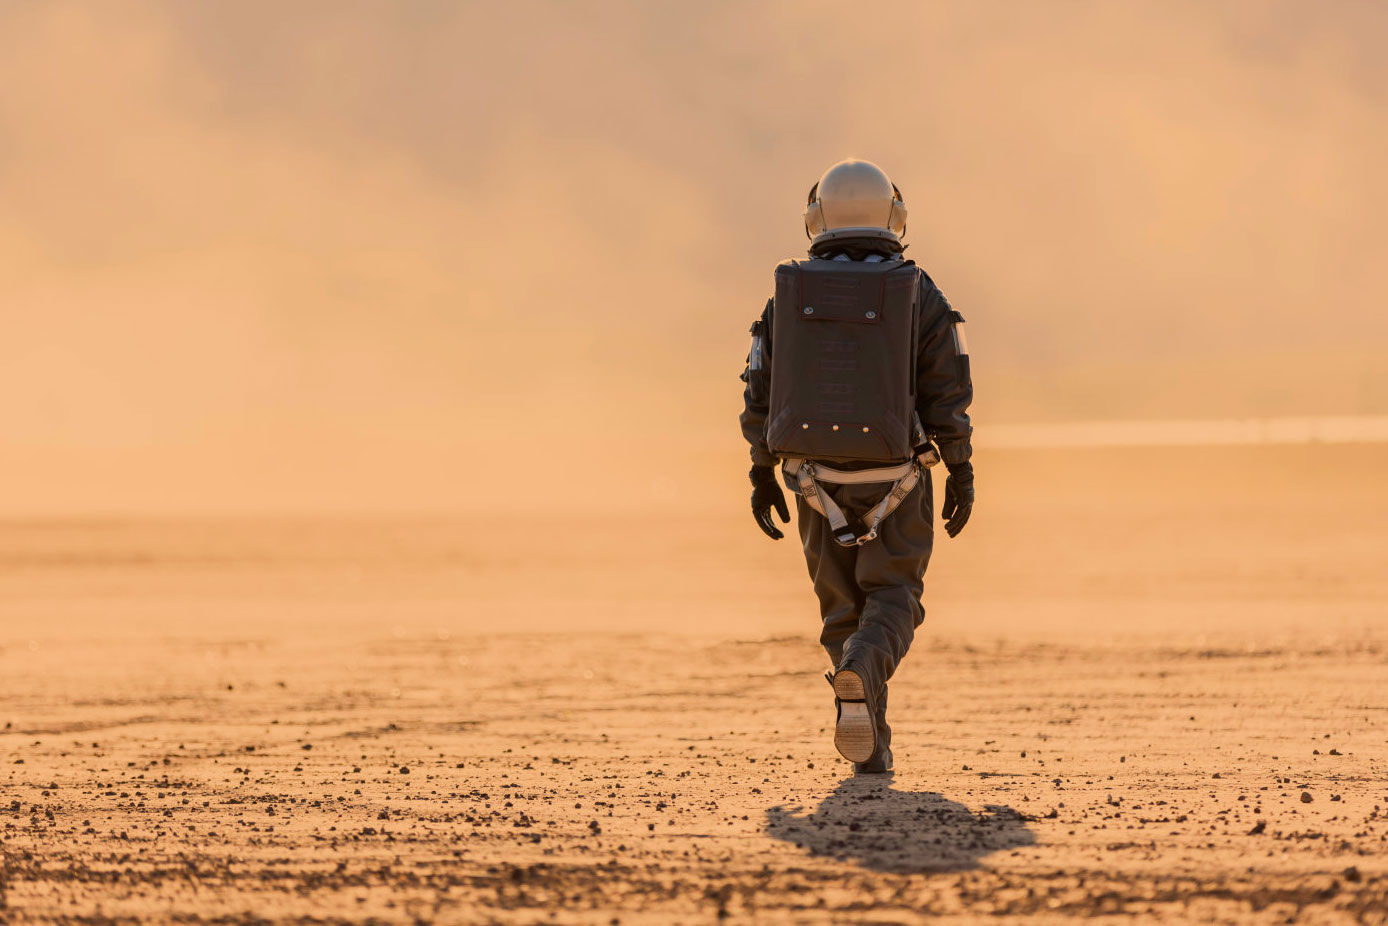 Cancel your plans as company promising trips to Mars goes bankrupt